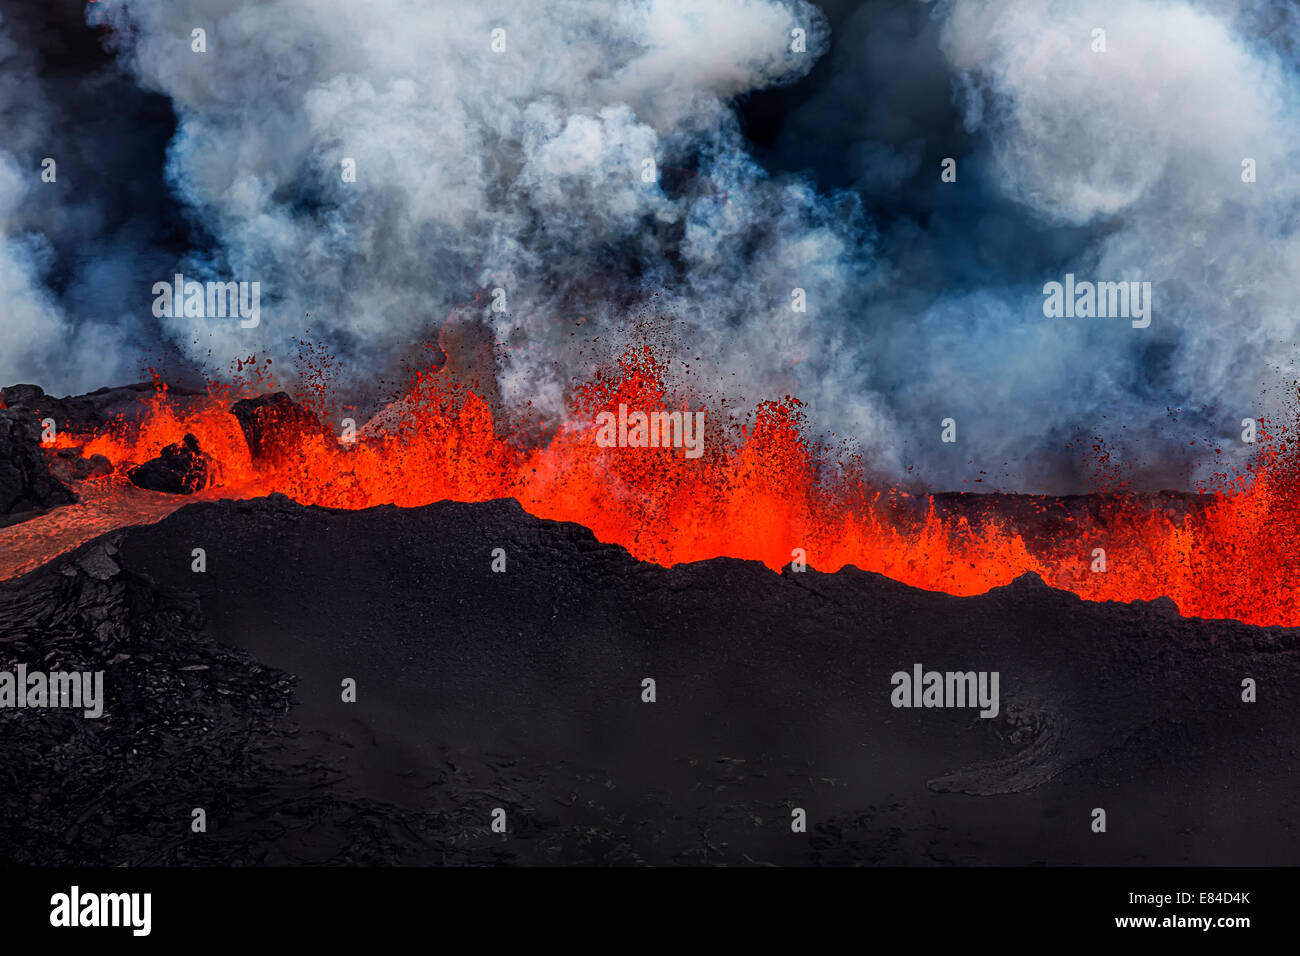 Lava fountains at Holuhraun Fissure eruption near the Bardarbunga Volcano, Iceland. - Stock Image